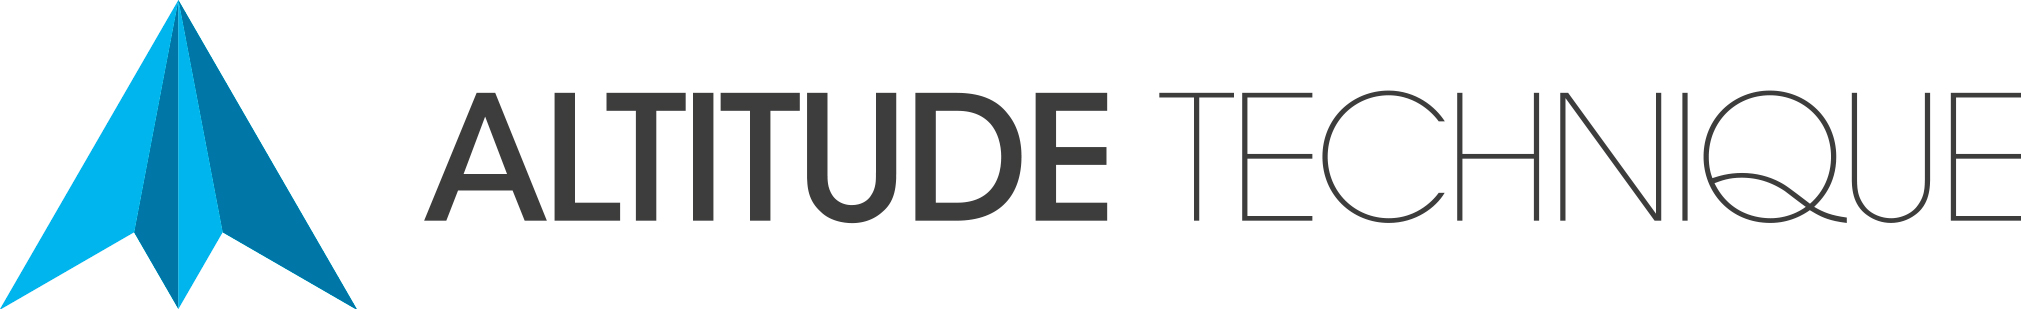 Altitude Technique logo